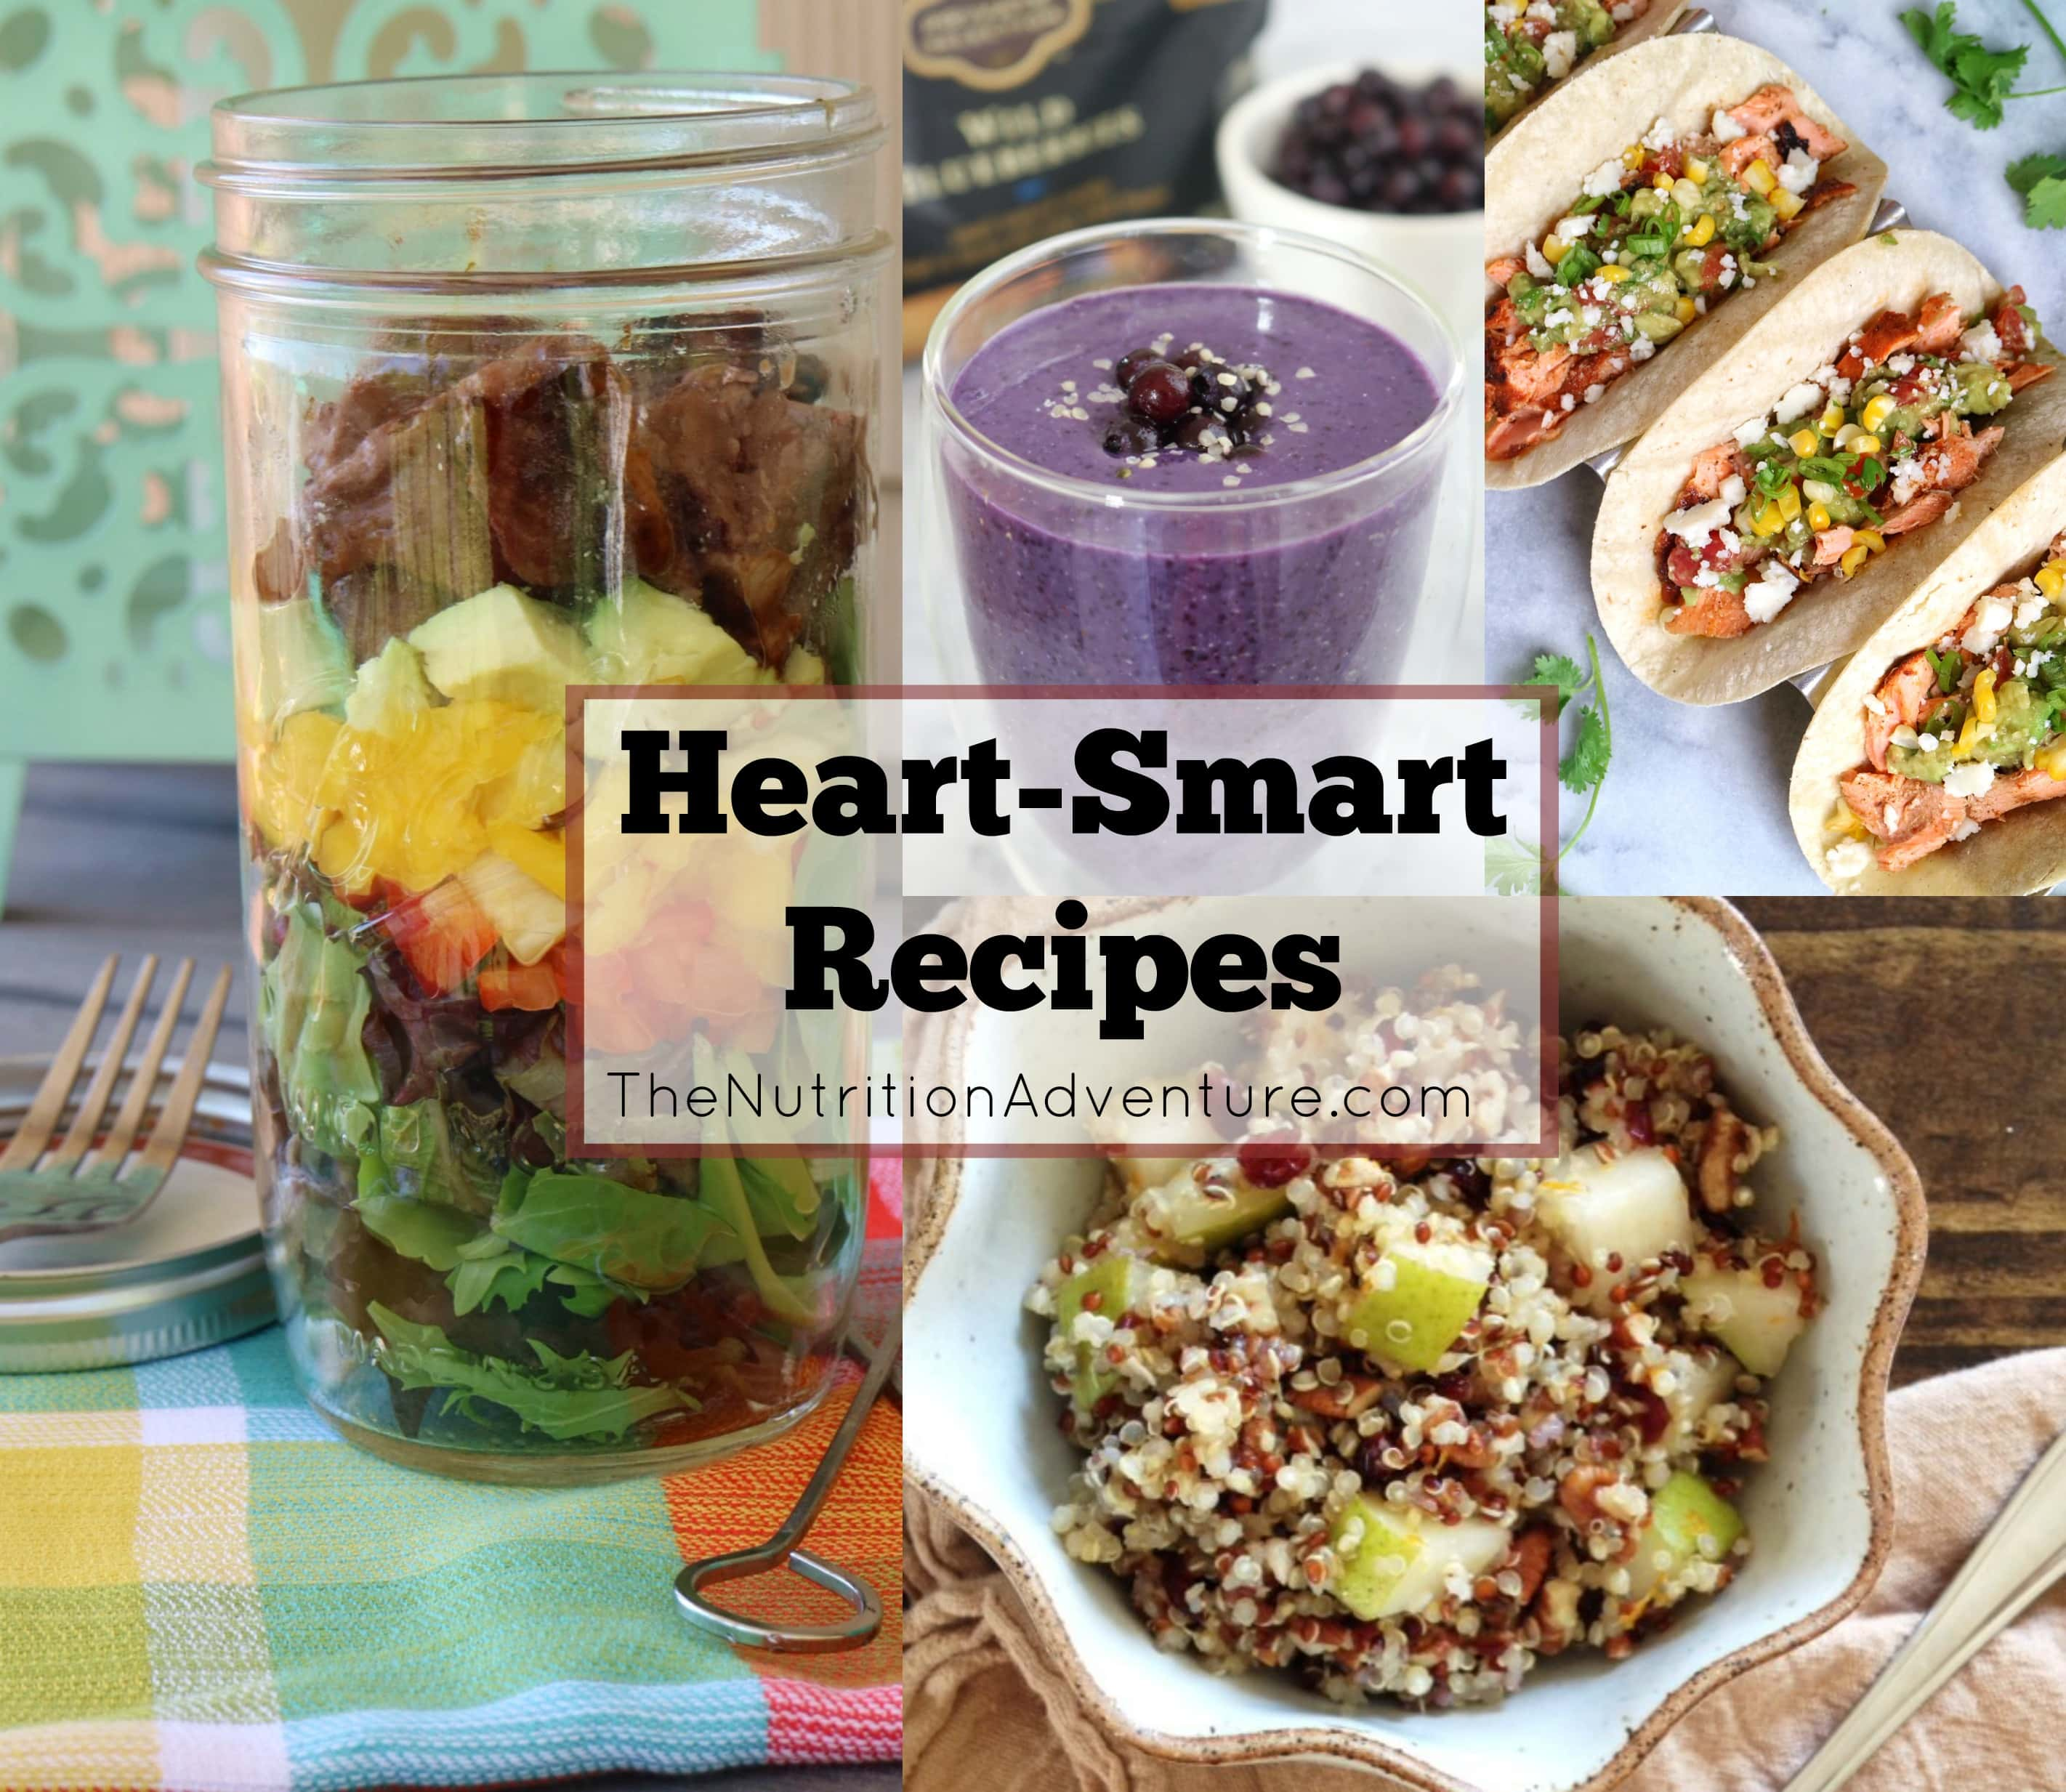 Heart-Smart Recipes | The Nutrition Adventure